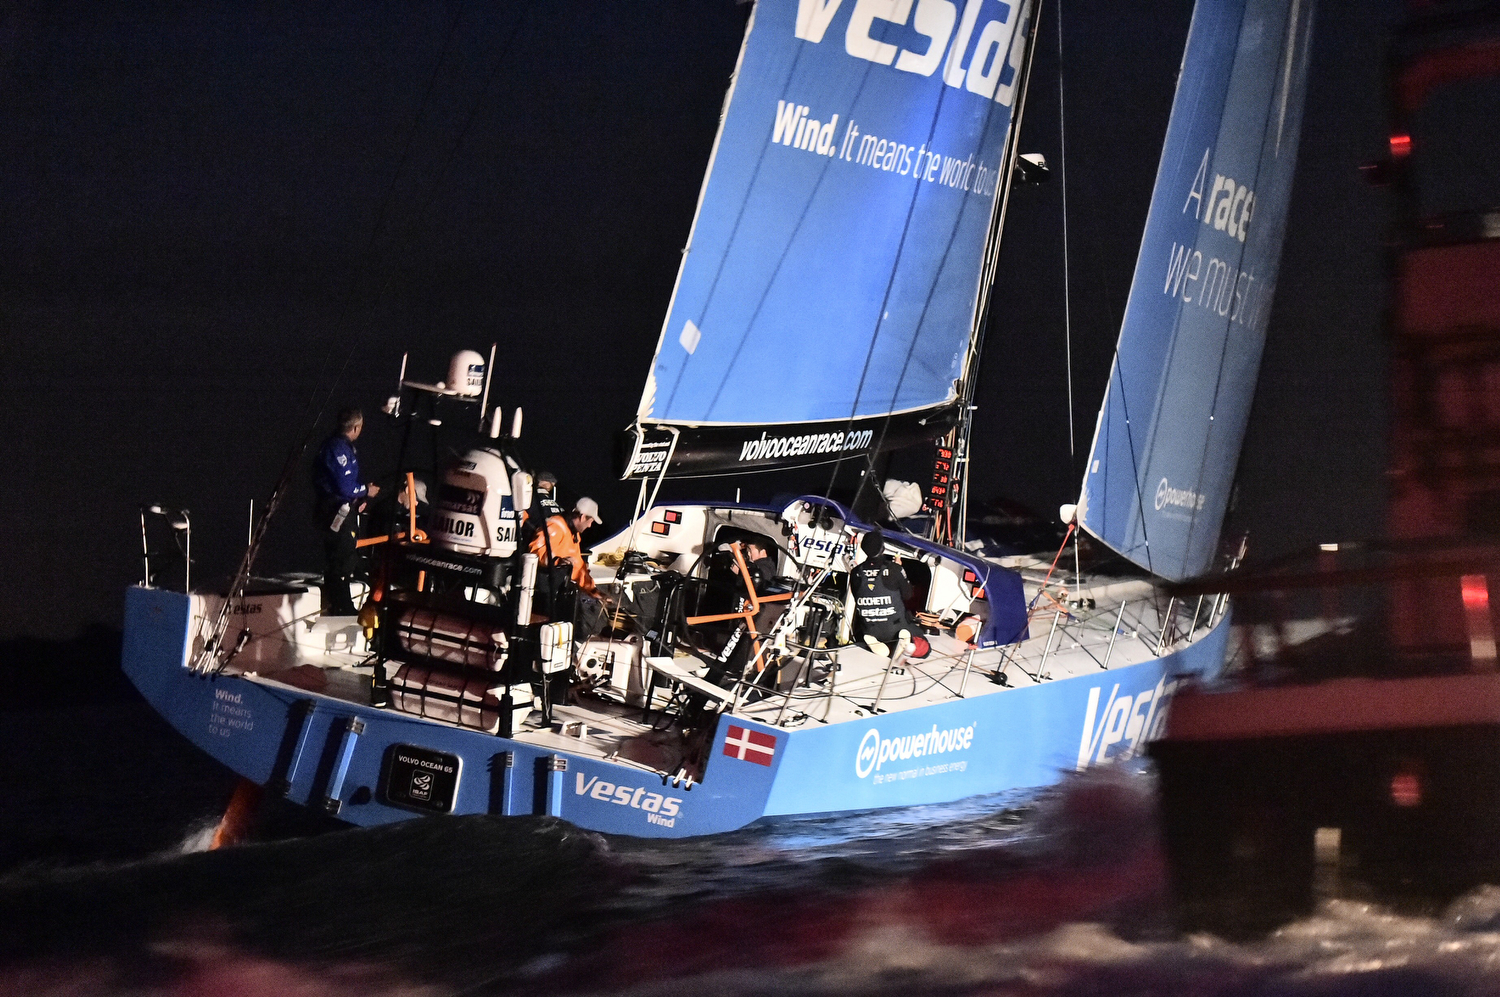 June 11, 2015. Team Vestas Wind arrives in second position for Leg 8 from Lisbon to Lorient (Photo by Ricardo Pinto / Volvo Ocean Race)